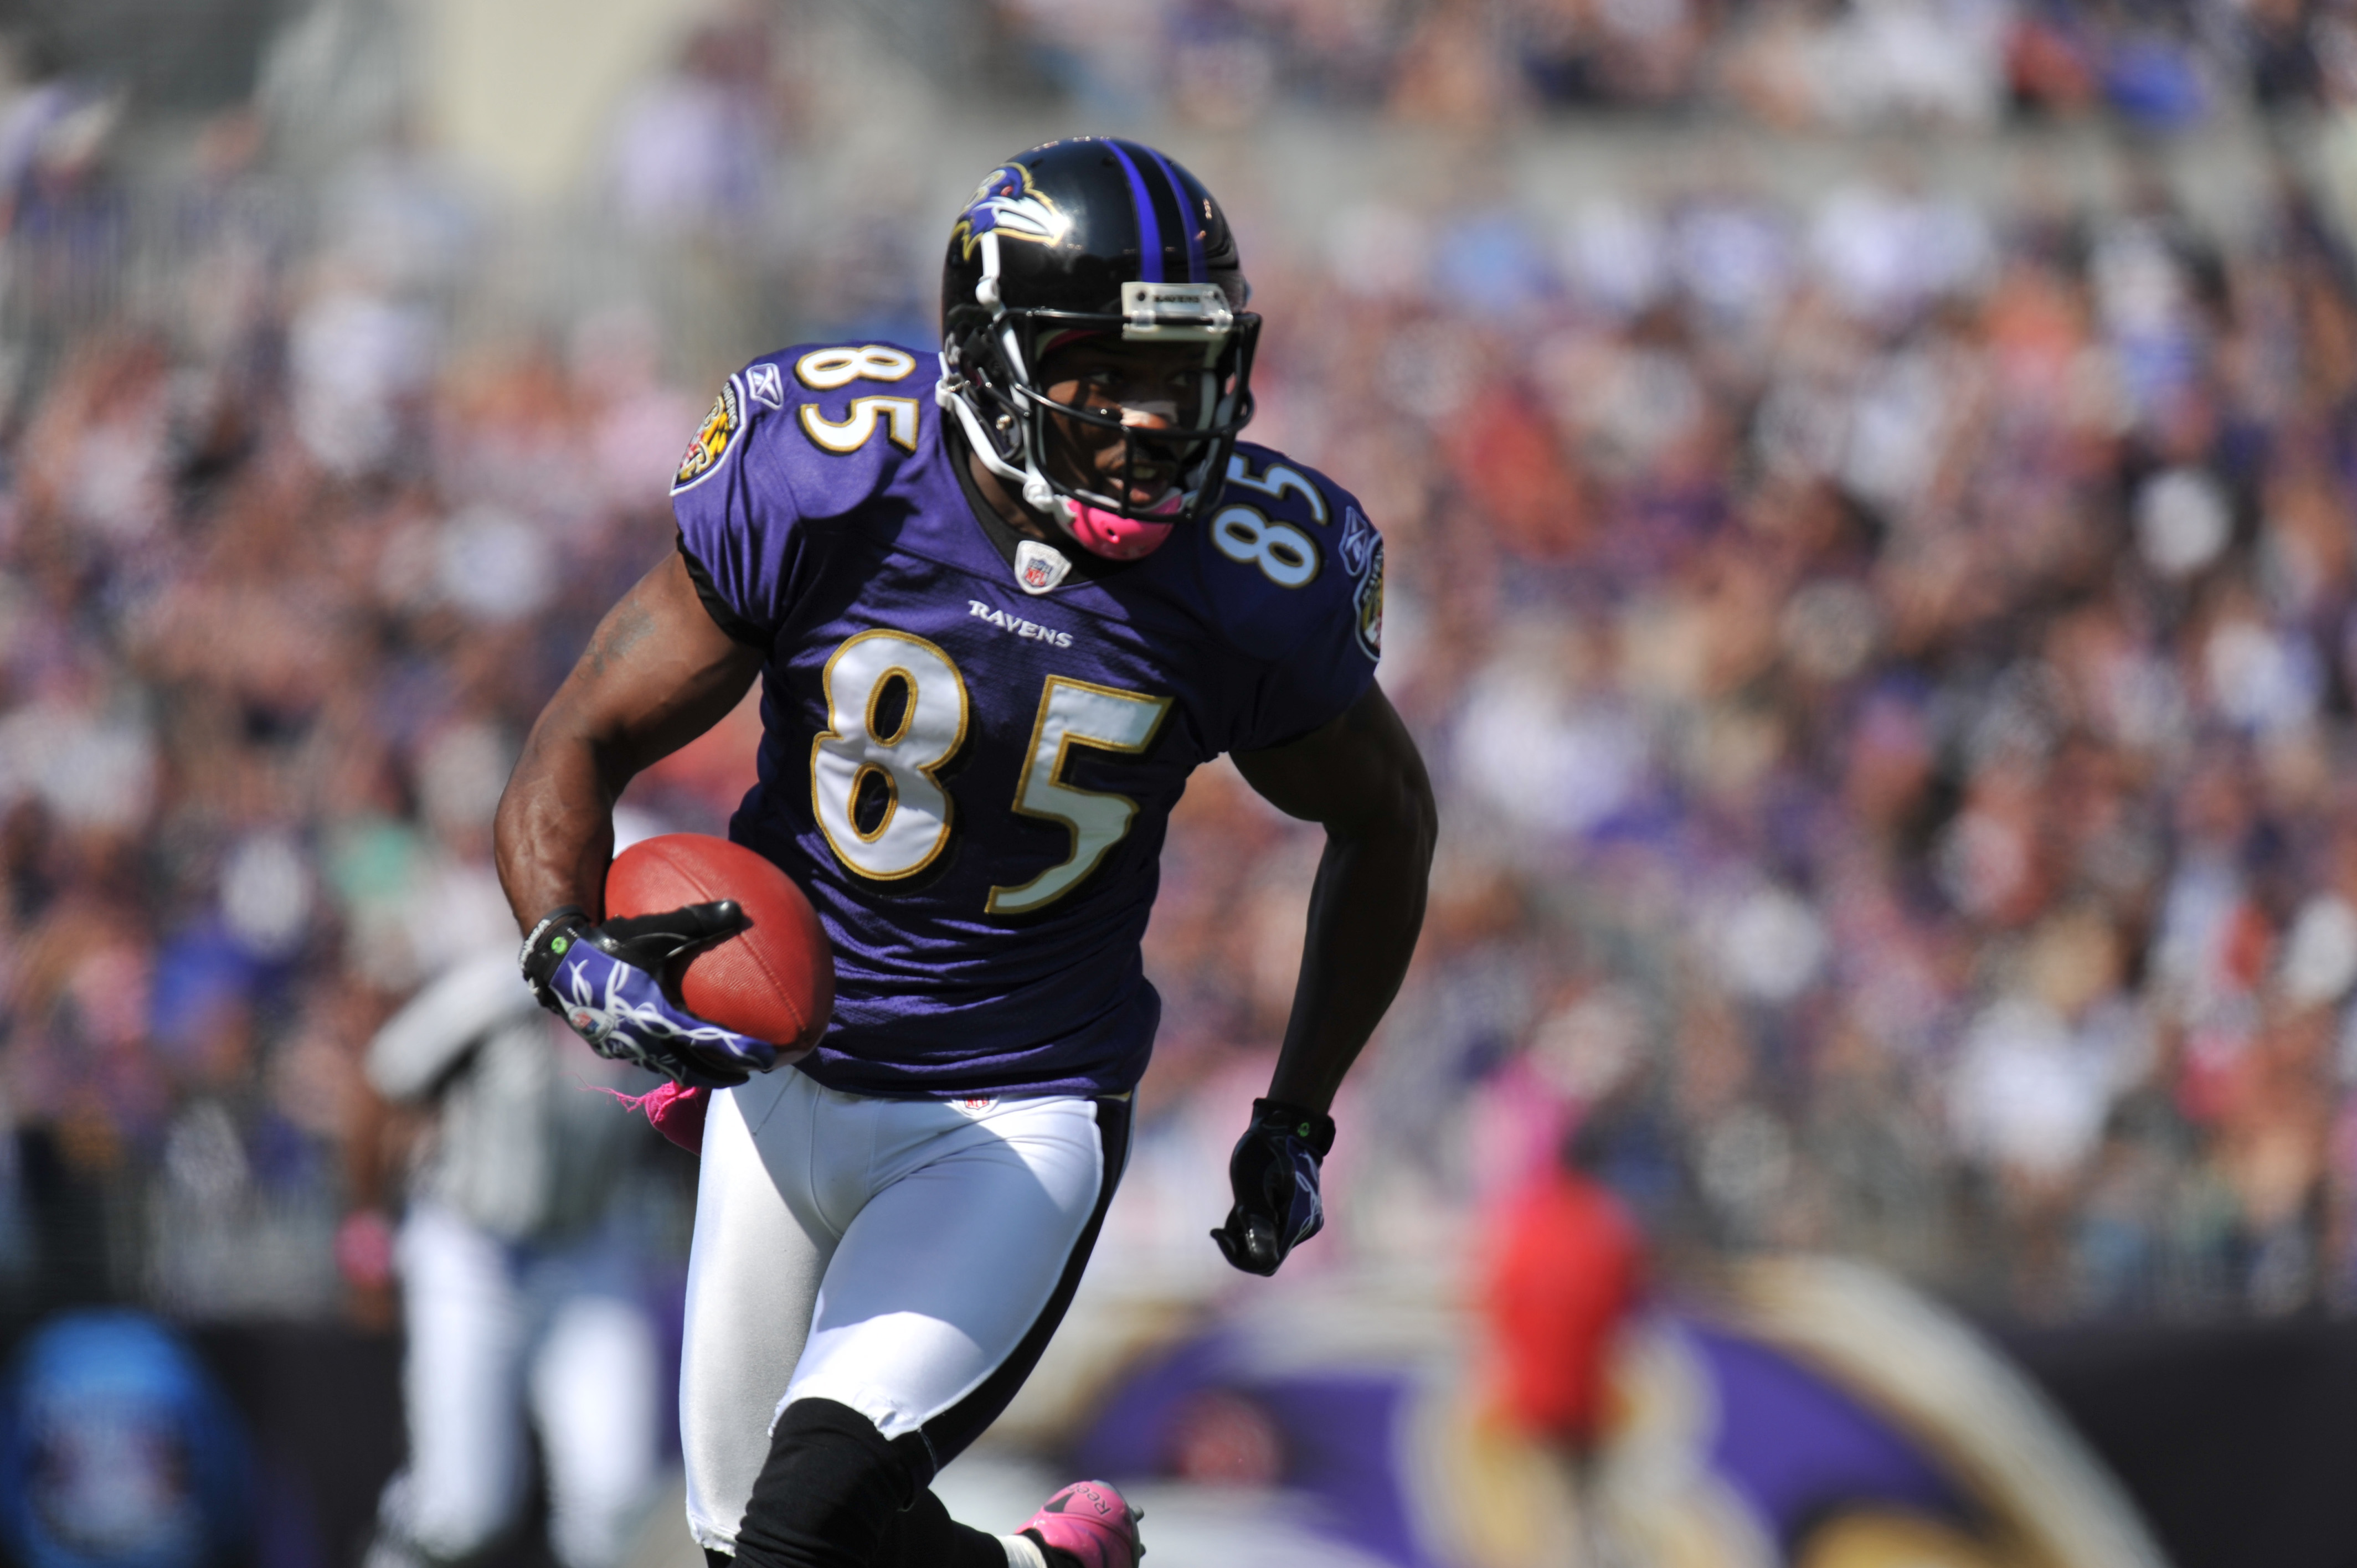 BALTIMORE, MD - OCTOBER 10: Derrick Mason #85 of the Baltimore Ravens runs the ball against the Denver Broncos at M&T Bank Stadium on October 10, 2010 in Baltimore, Maryland. Players wore pink in recognition of Breast Cancer Awareness Month. The Ravens de